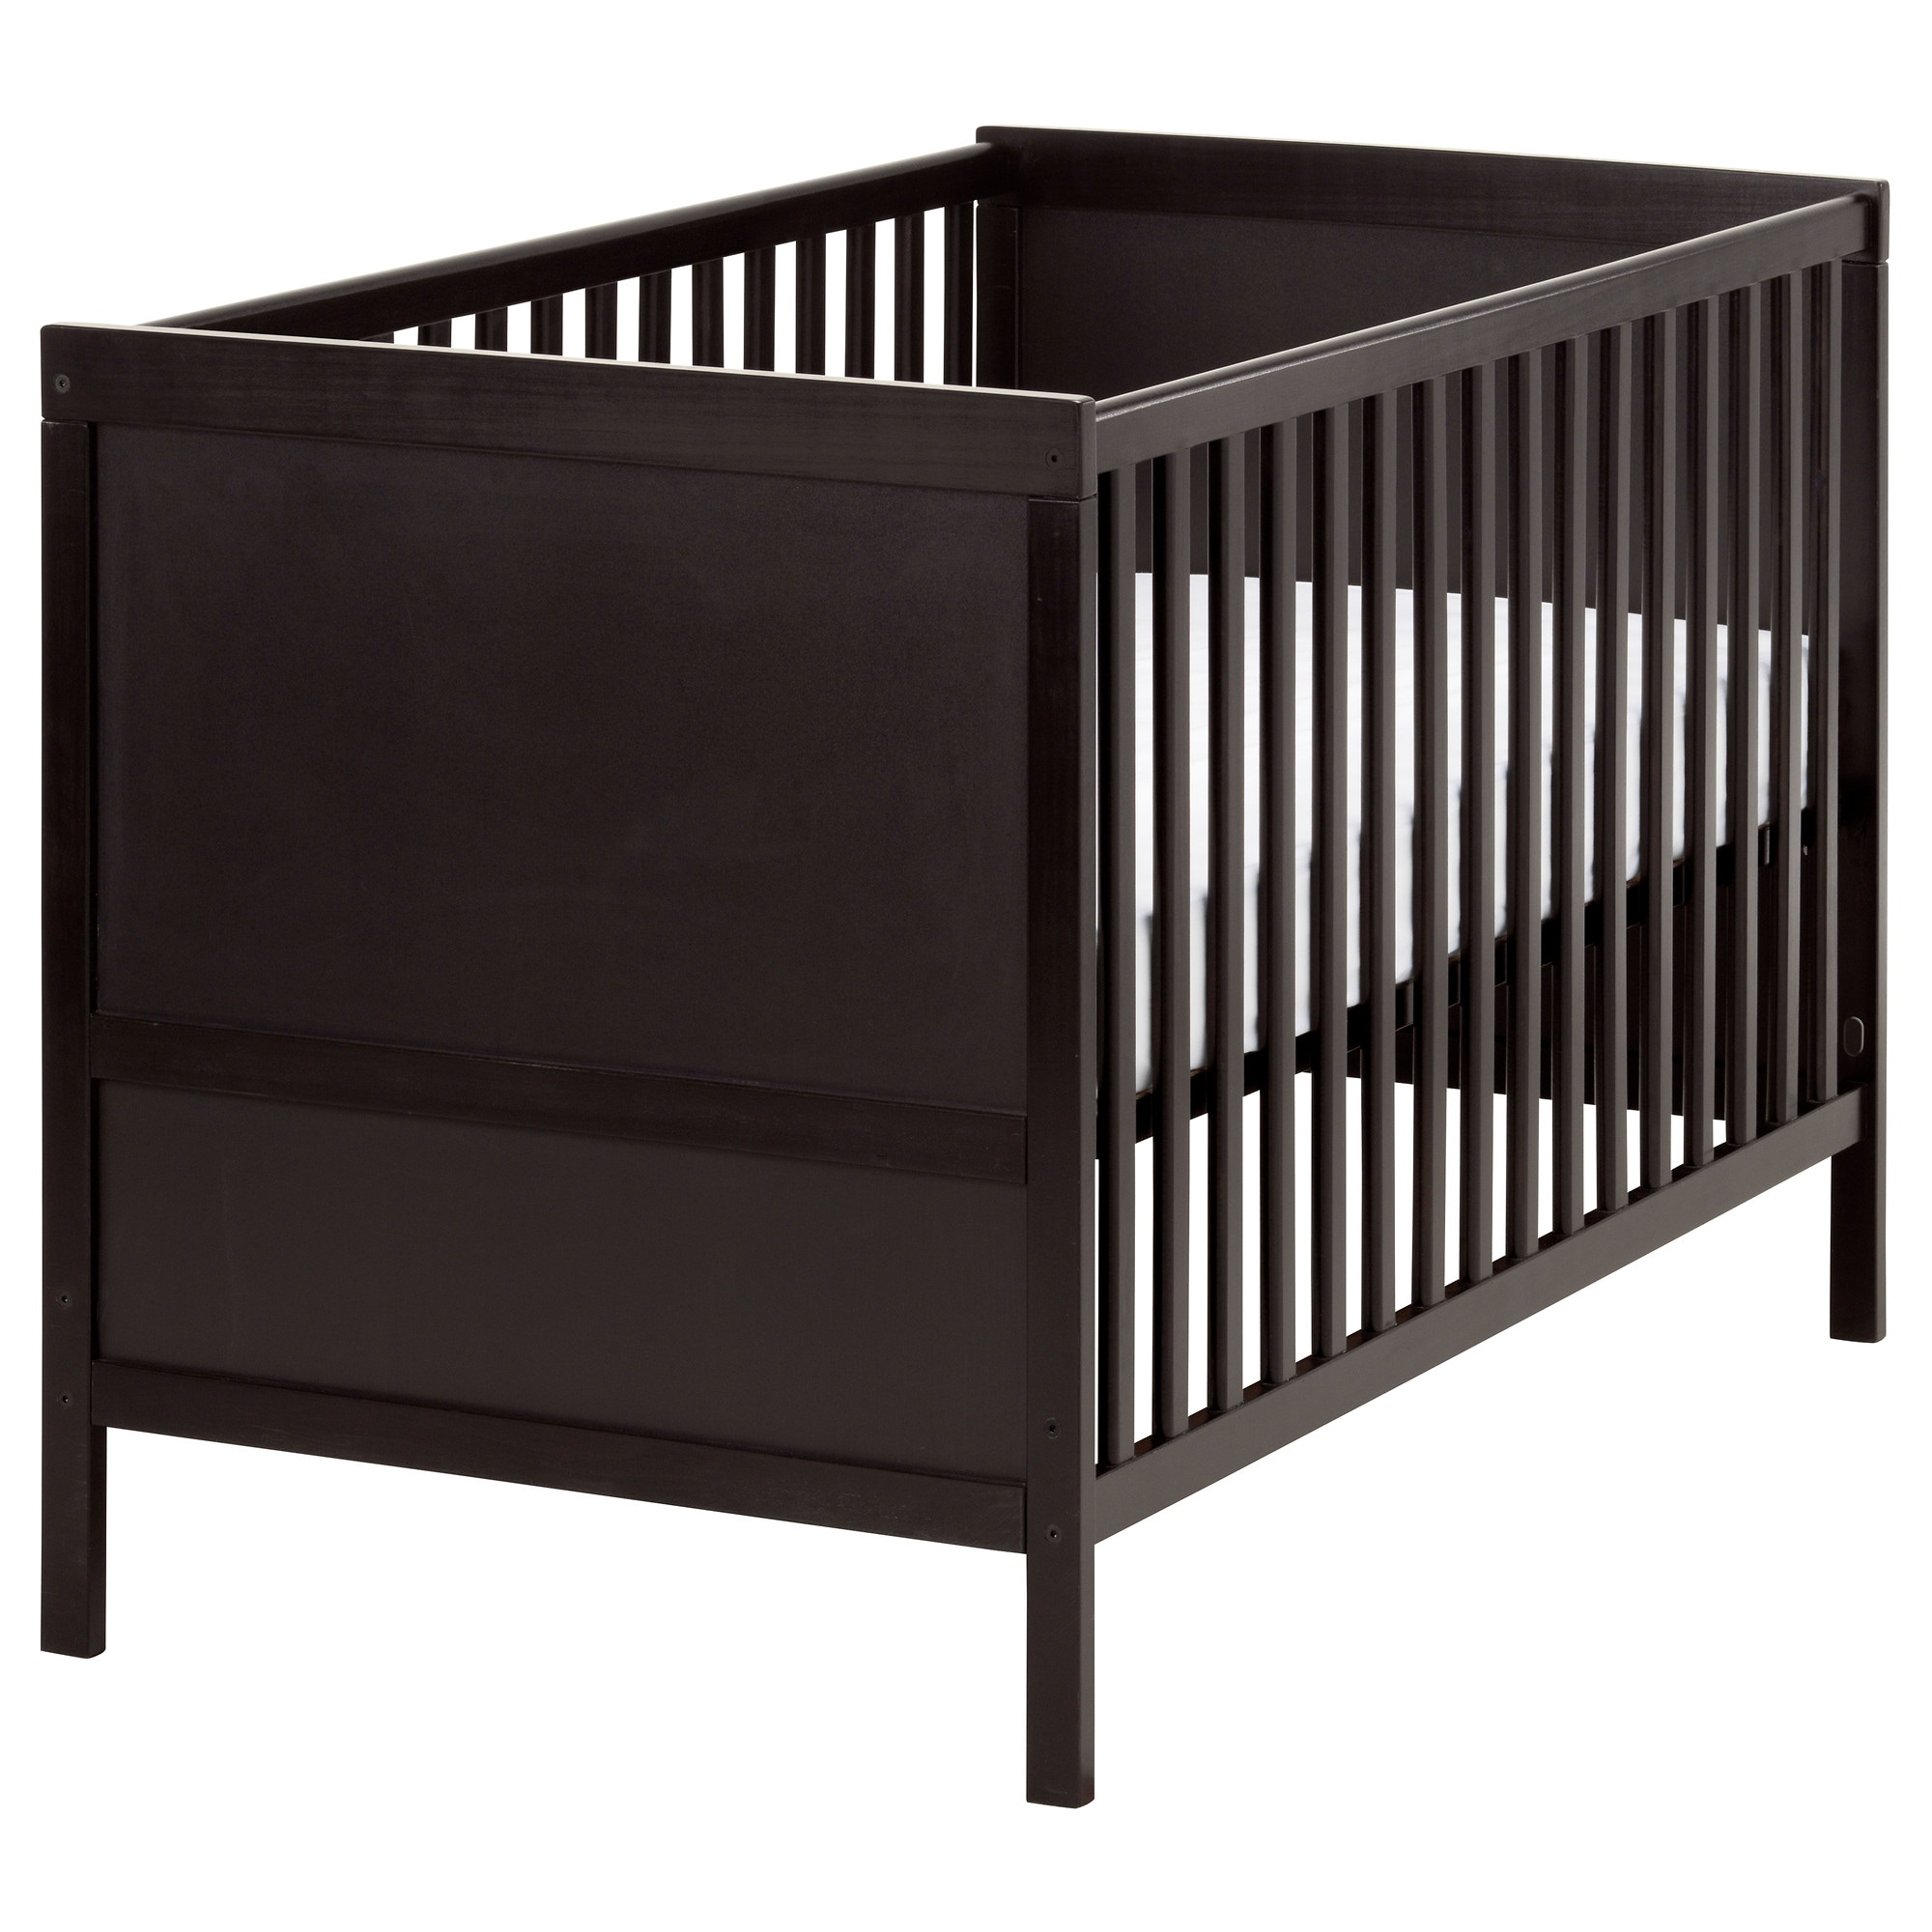 Baby bed extension uk - Sundvik Crib Black Brown Length 54 3 8 Width 29